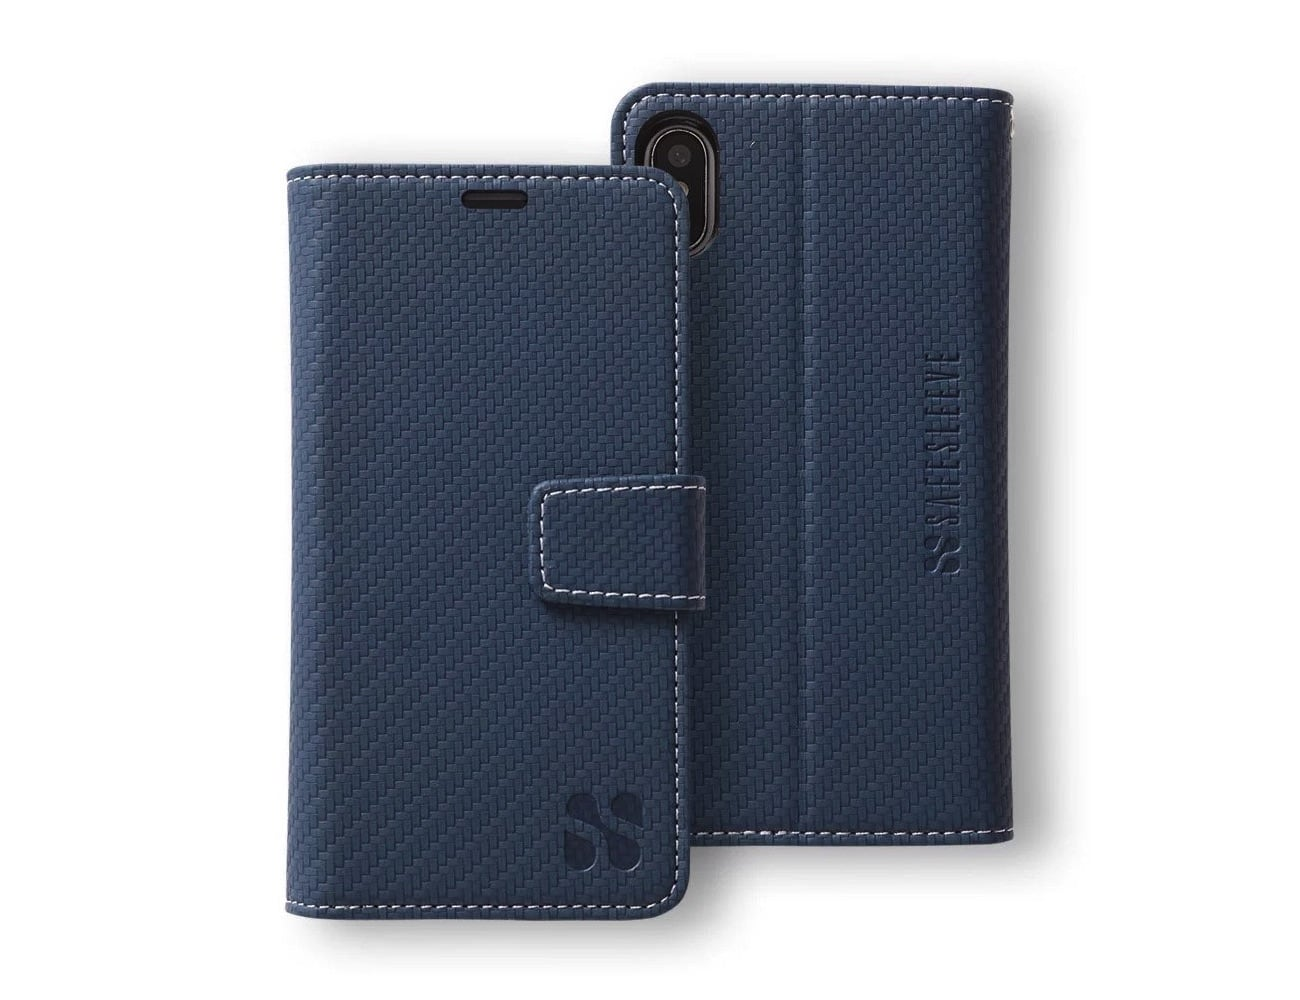 SafeSleeve Anti-Radiation RFID Phone Wallet Case gives you total peace of mind